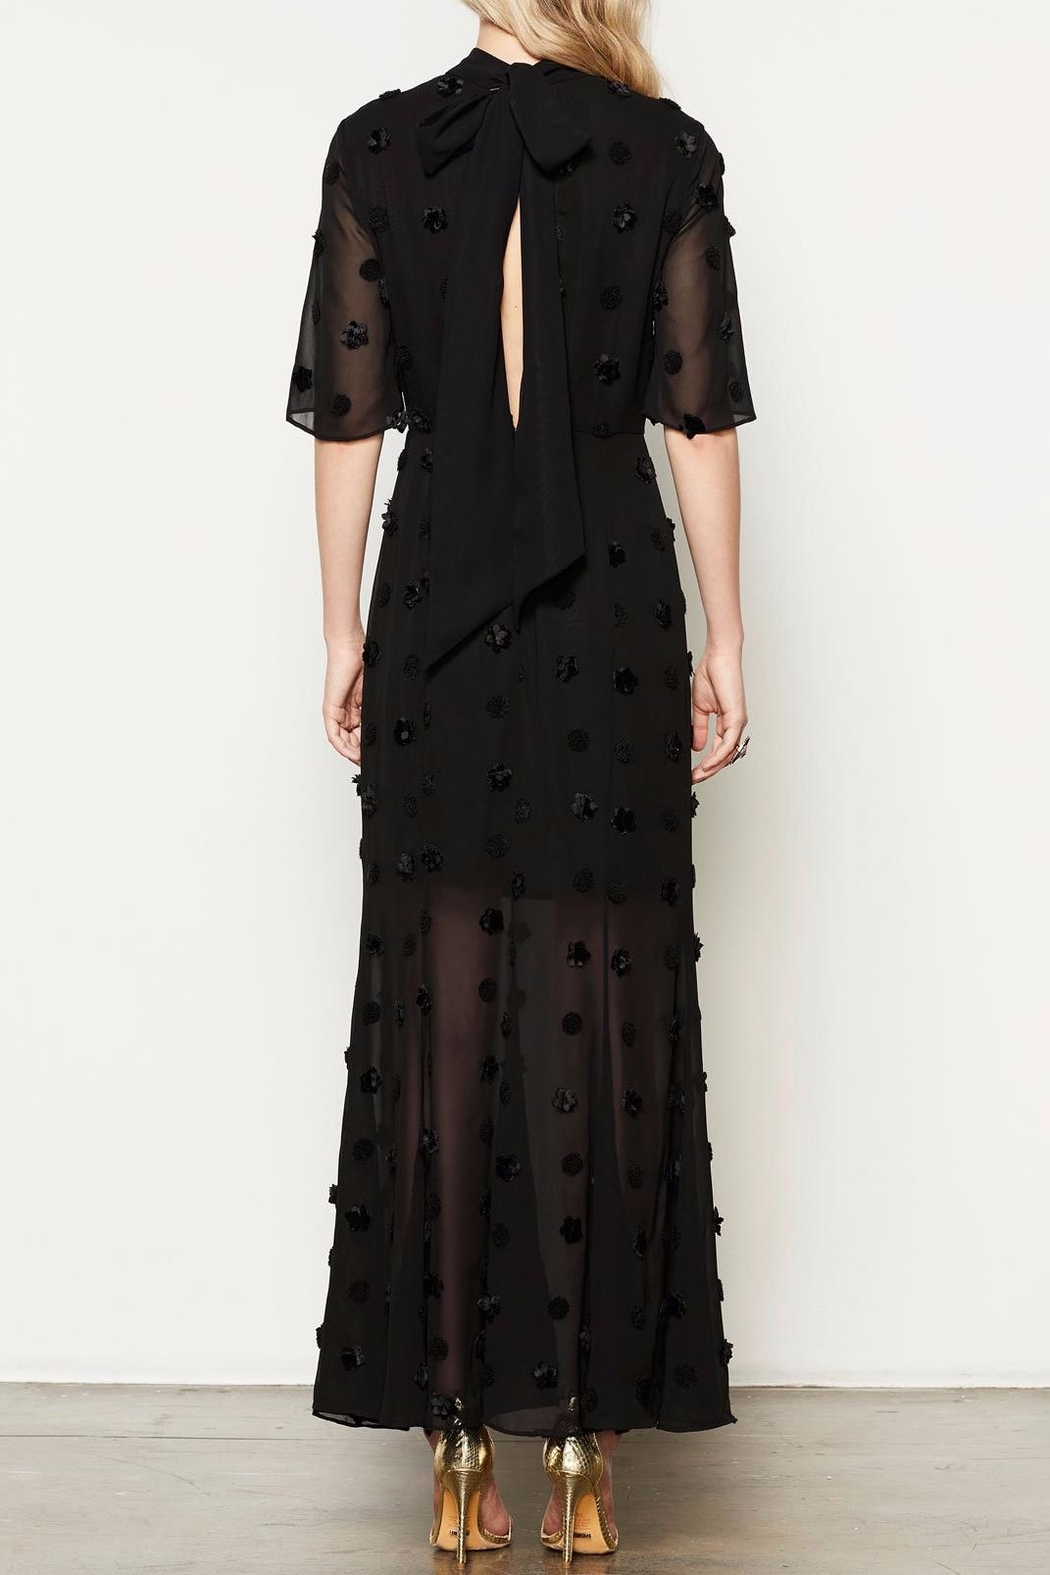 Stevie May Evolution Maxi Dress - Back Cropped Image